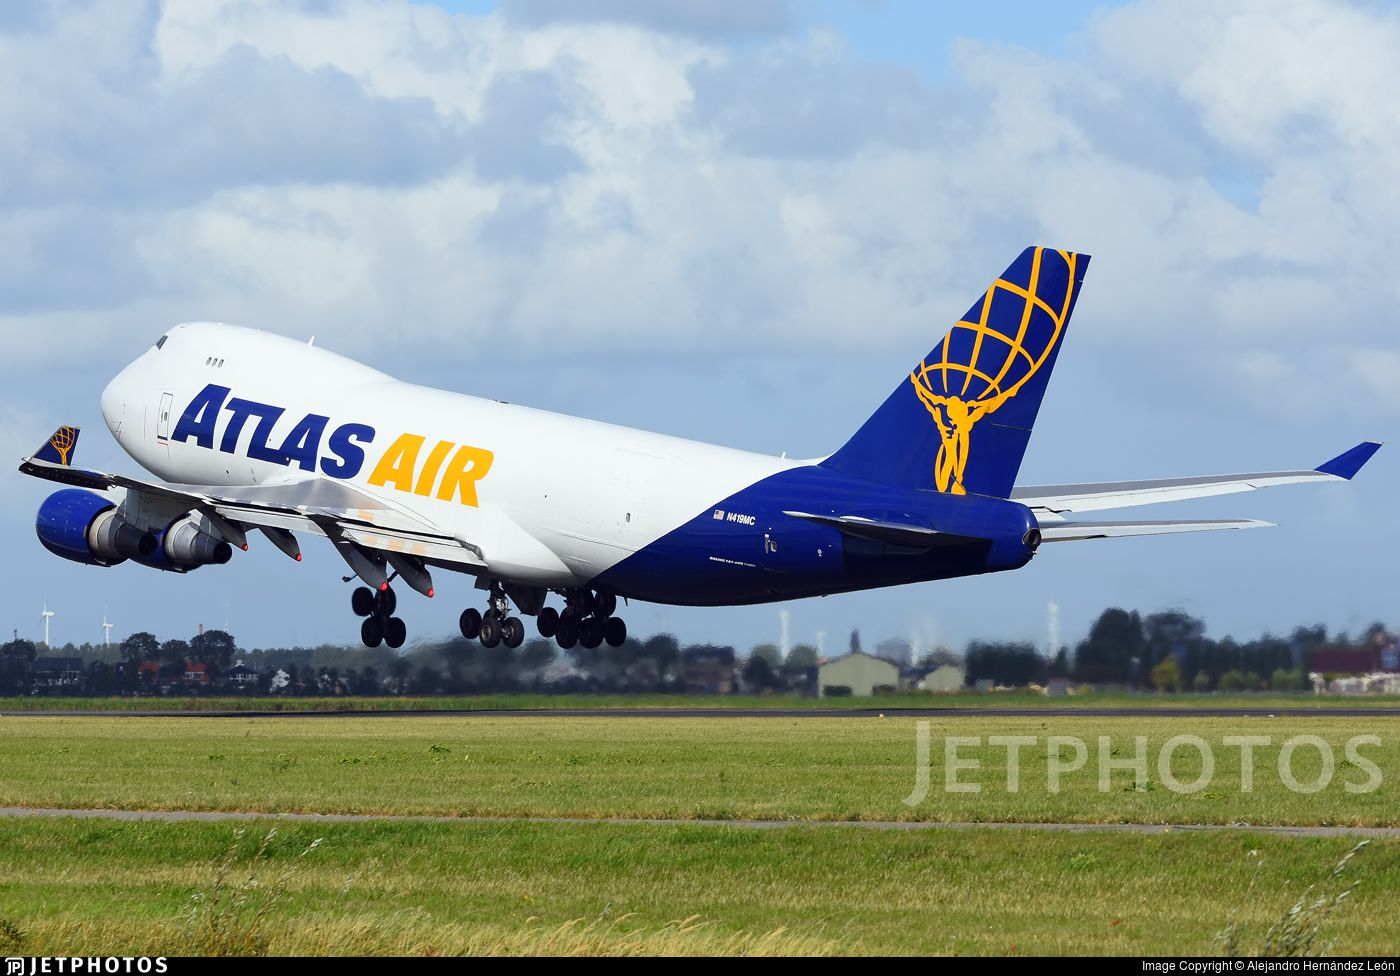 Airline Atlas Air (leased from Bank of China